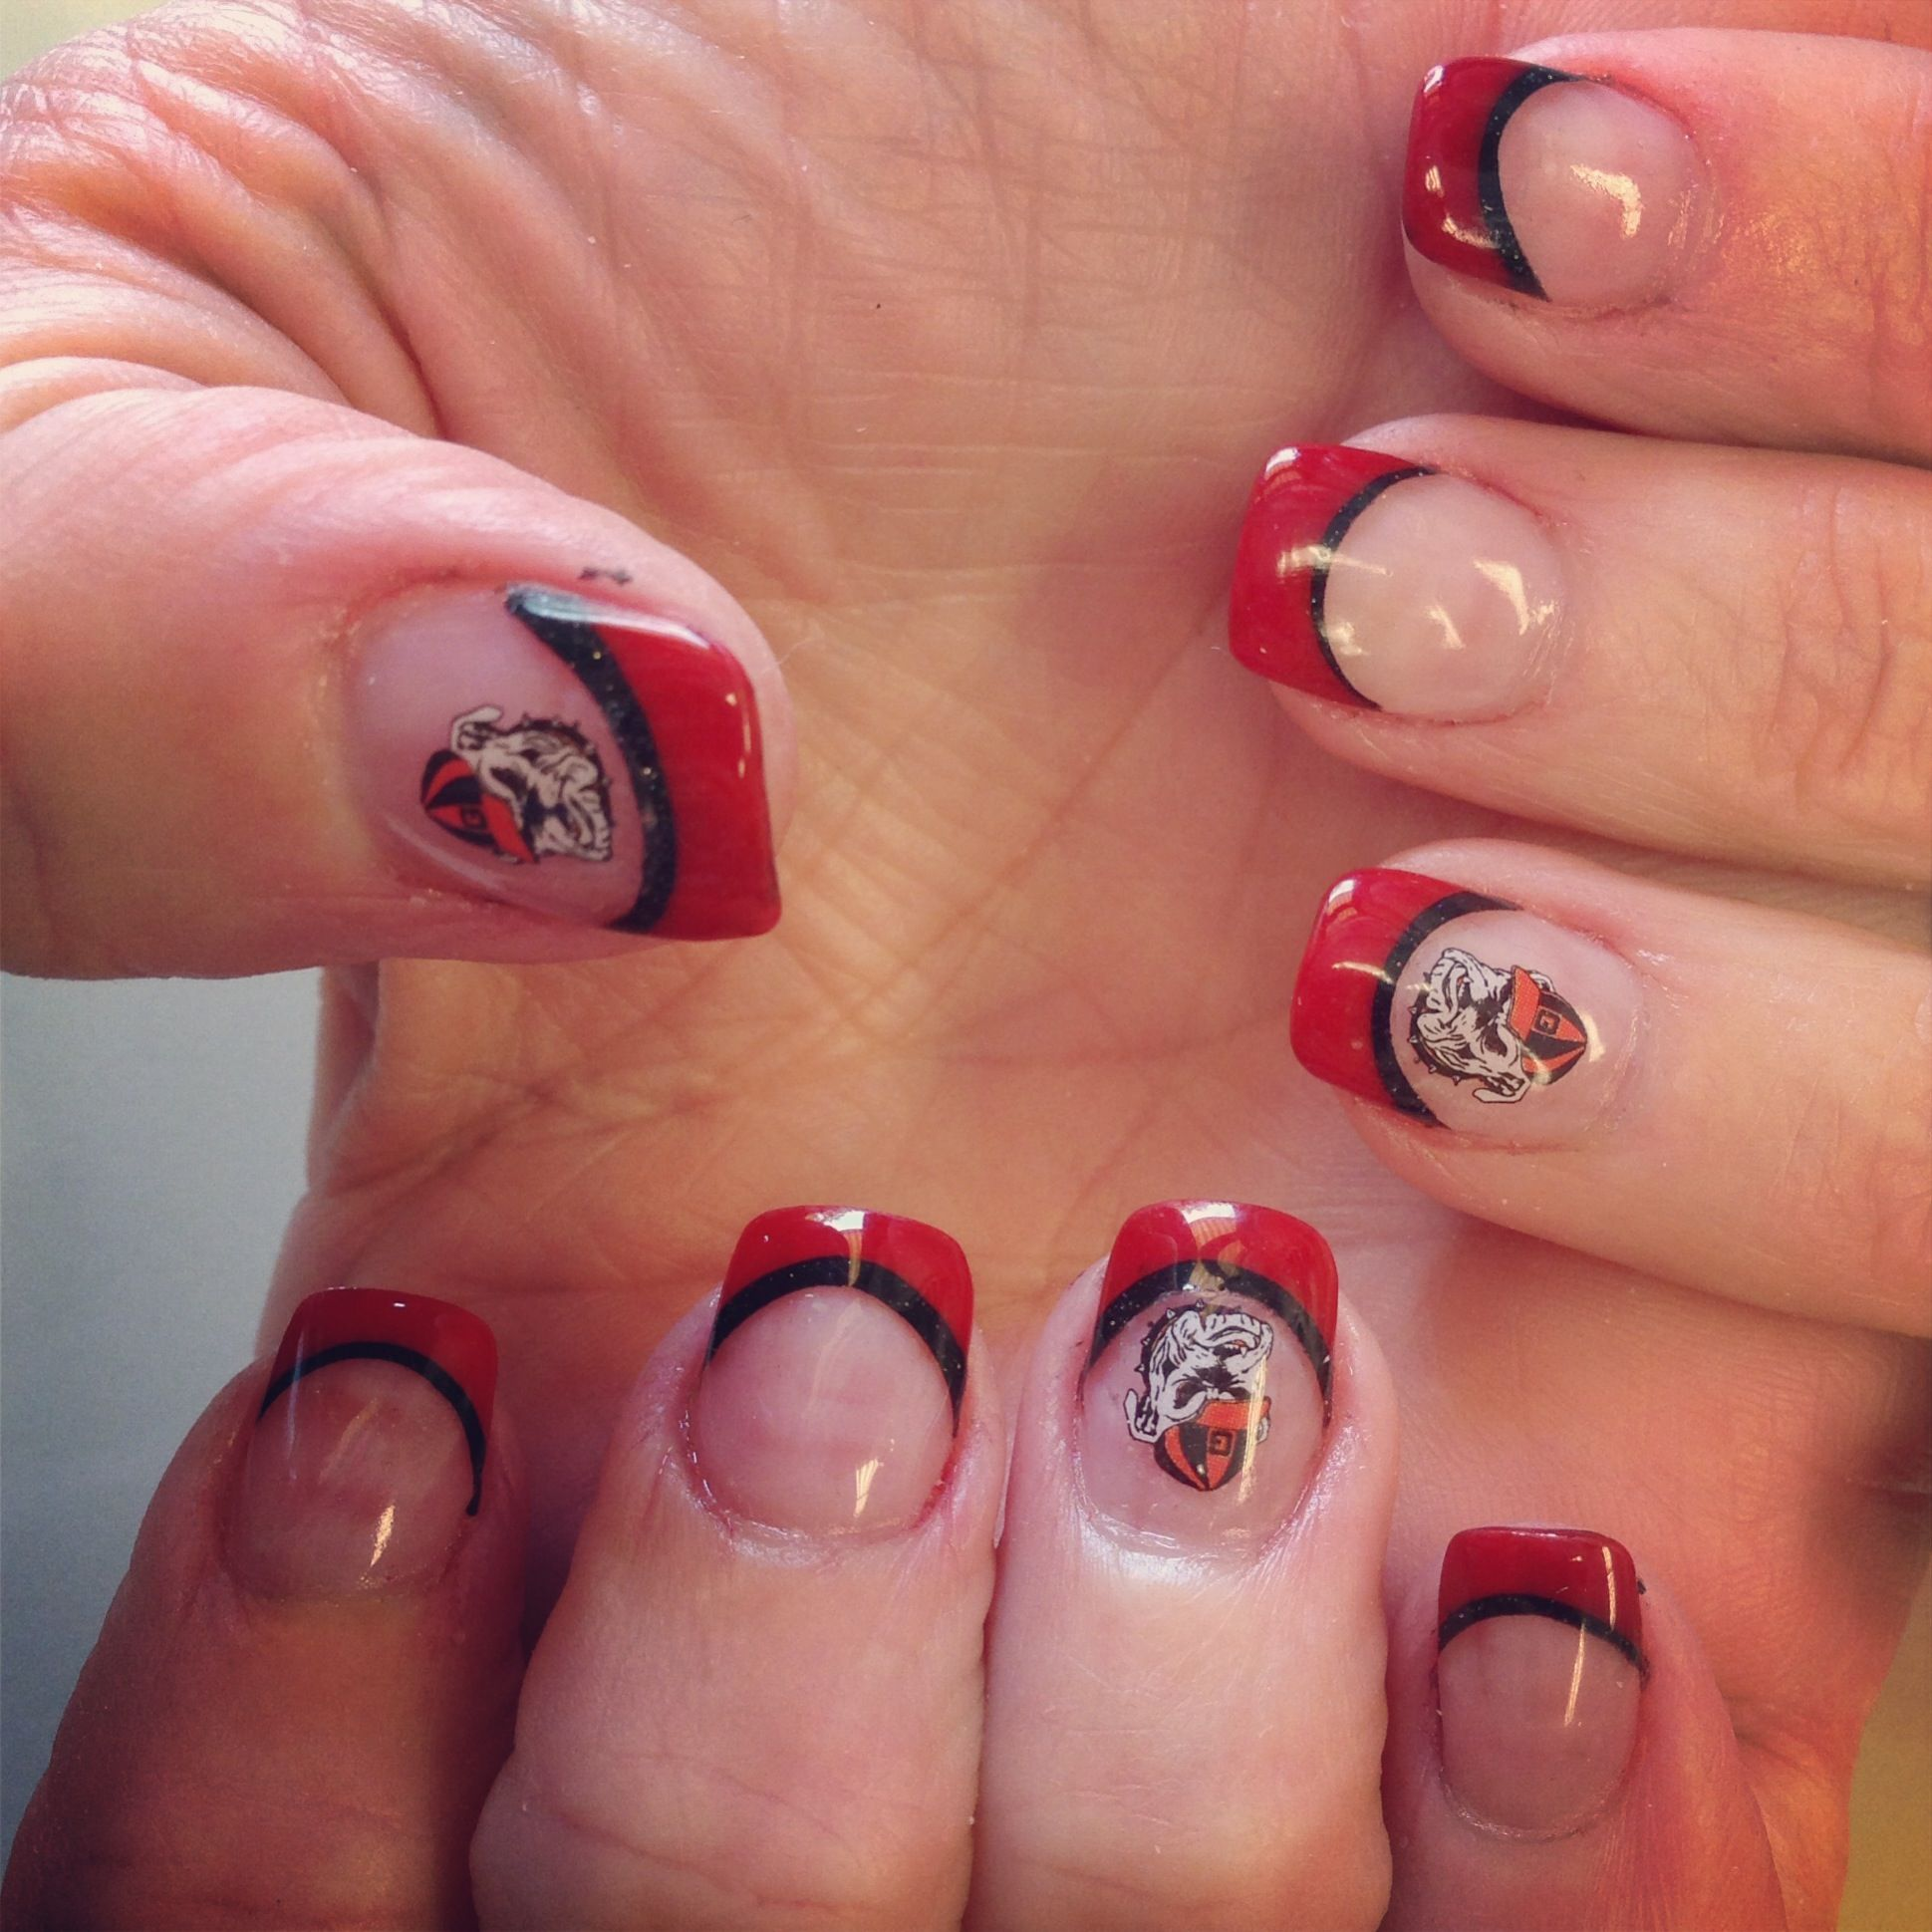 Georgia bulldogs nails | Nails by The Haute Spot | Pinterest ...